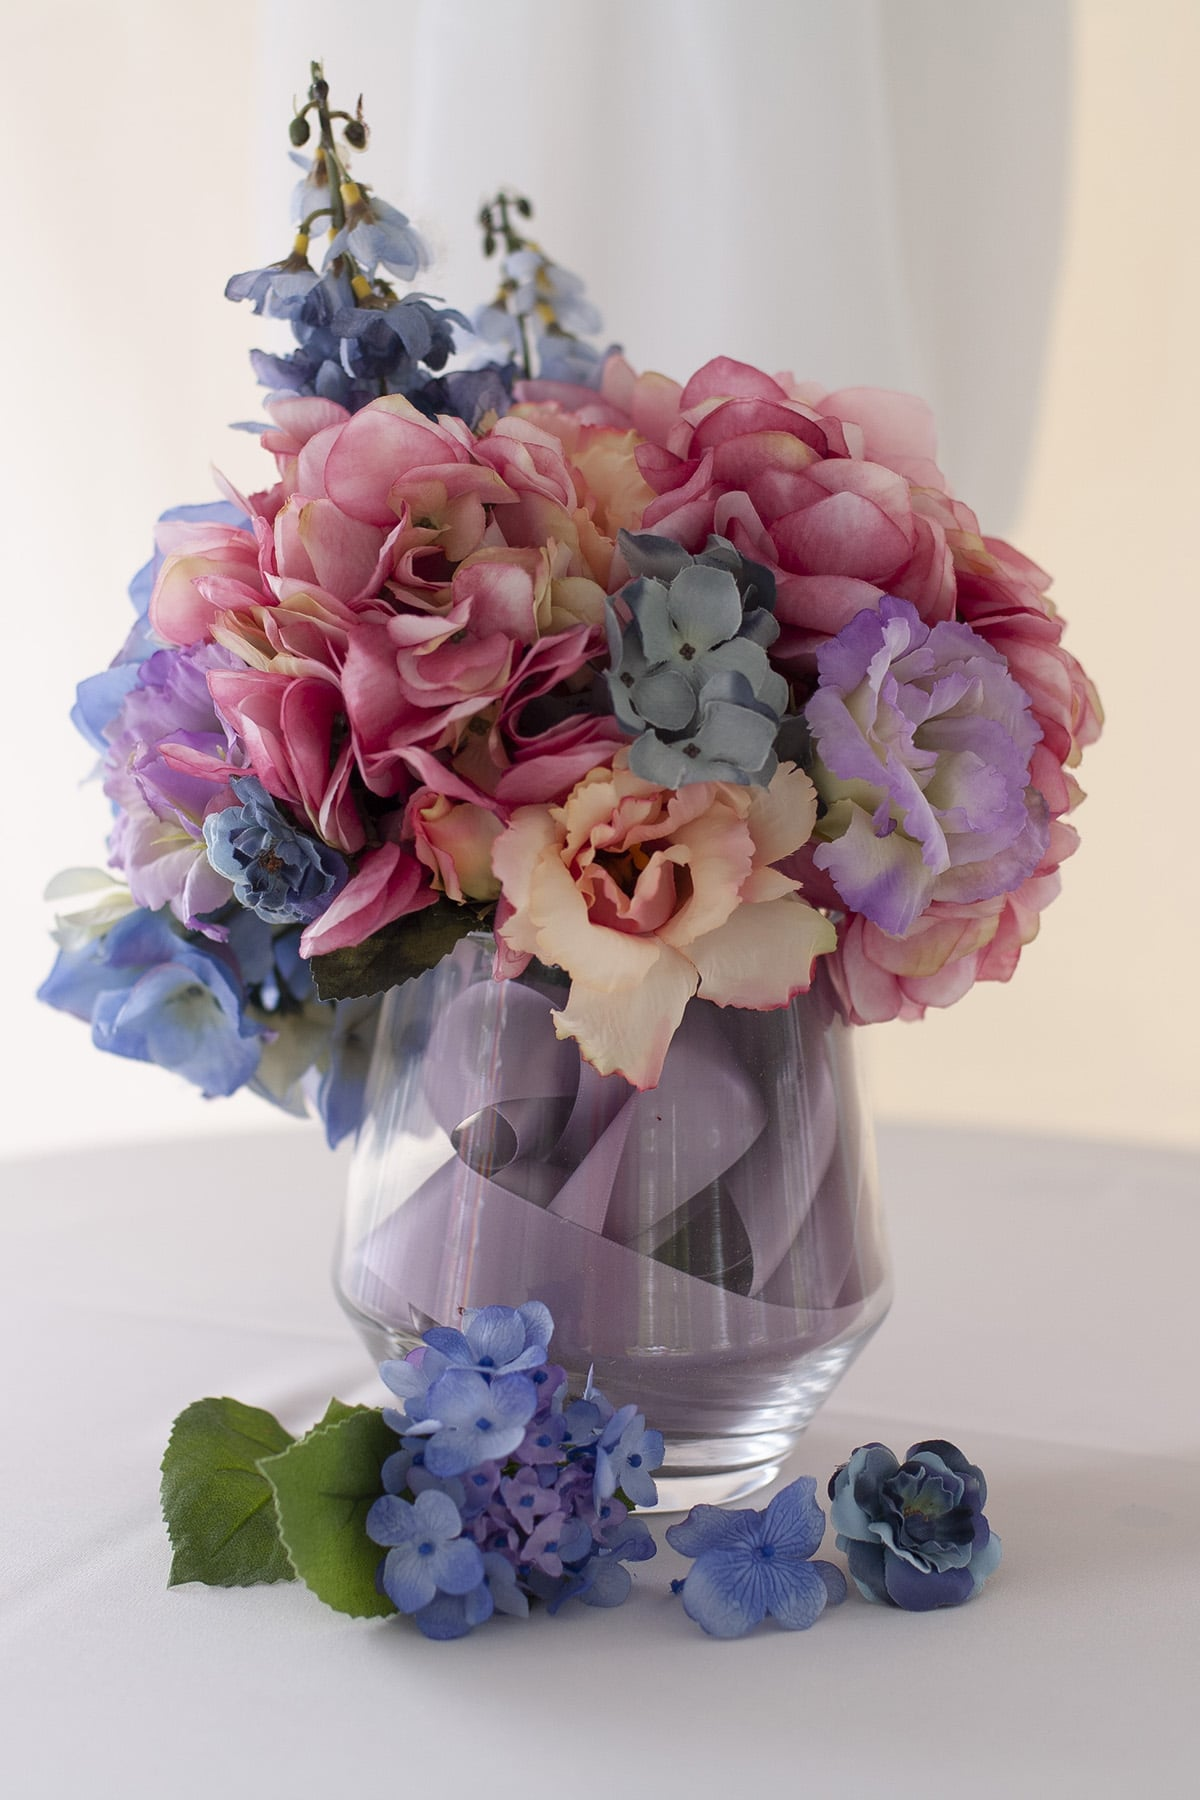 A vase with pastel silk hydrangeas and roses.